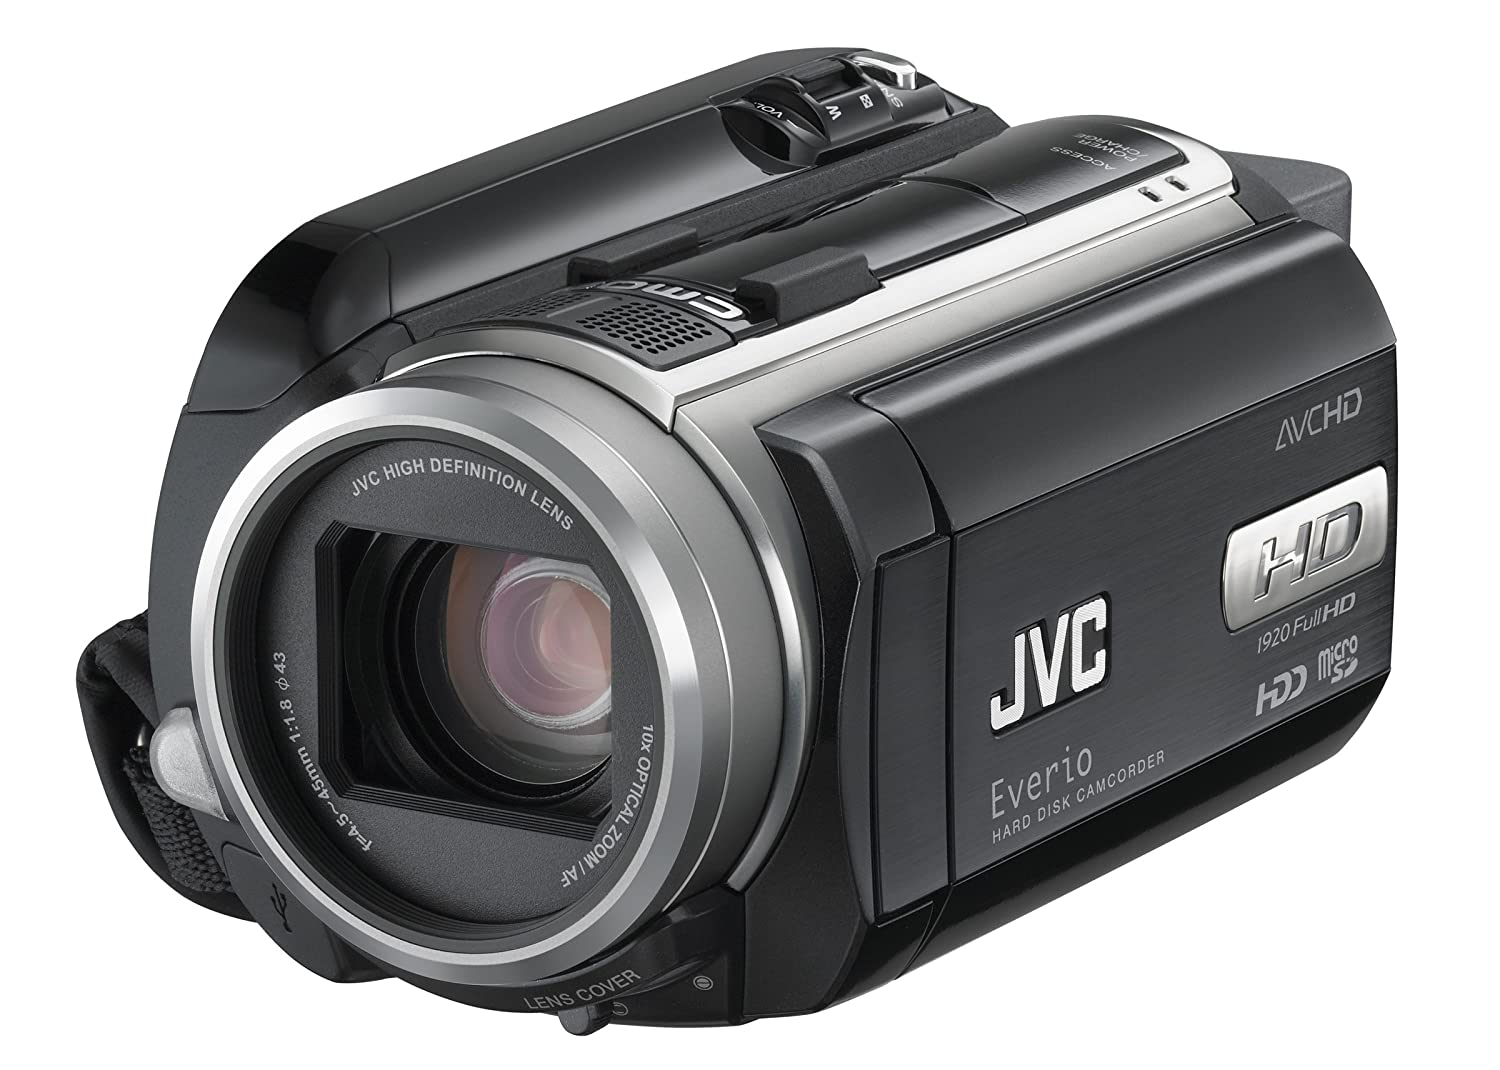 jvc everio gz mg330 user manual best setting instruction guide u2022 rh merchanthelps us JVC Camcorder Power Supply 300 X JVC HD Everio Camcorder Review